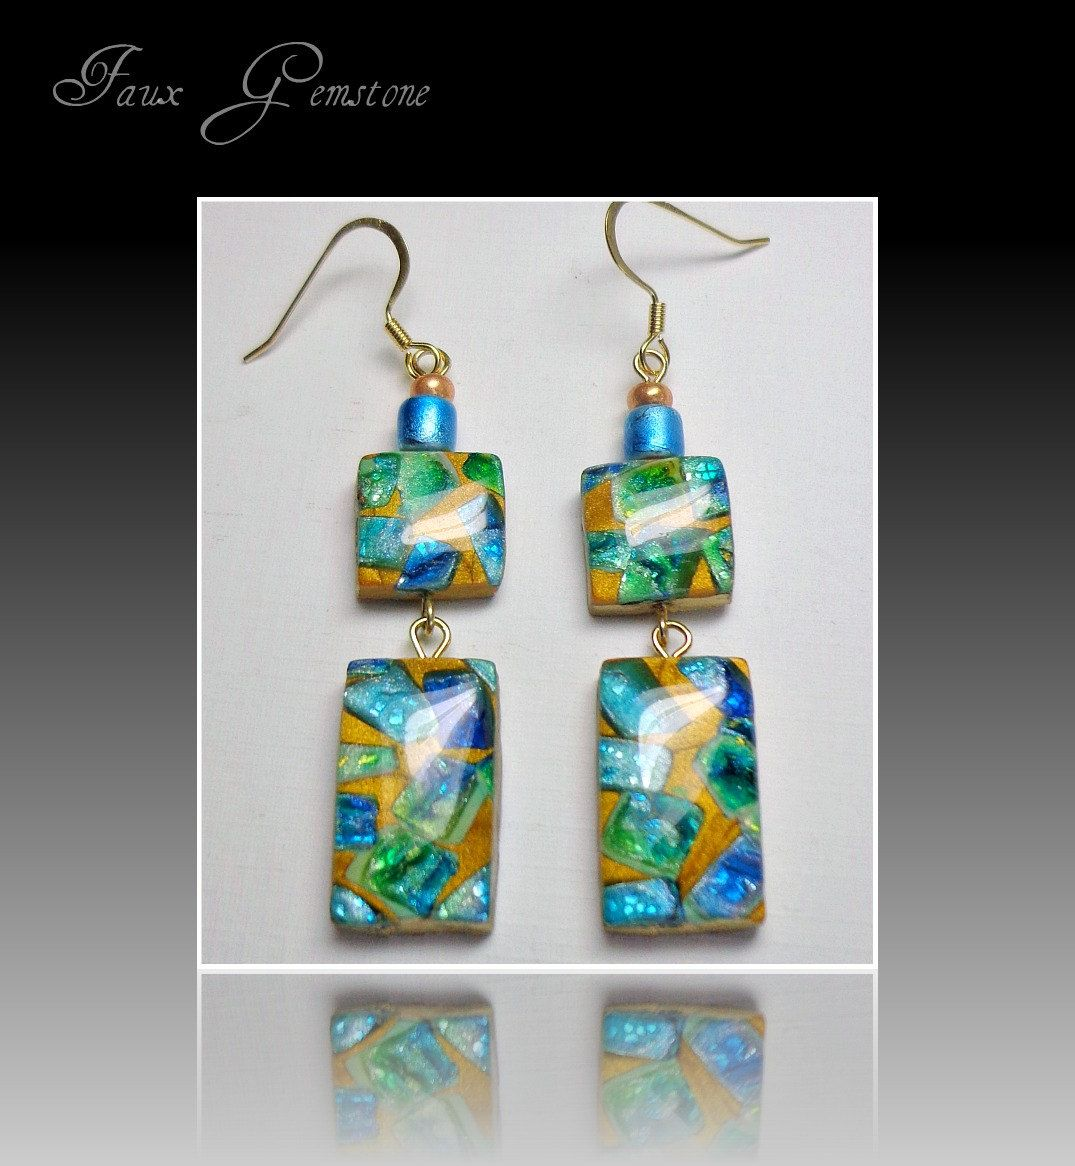 Faux Gemstone Turquiose & Emerald Earrings, Polymer Clay Jewelry $1200,  Via Etsy